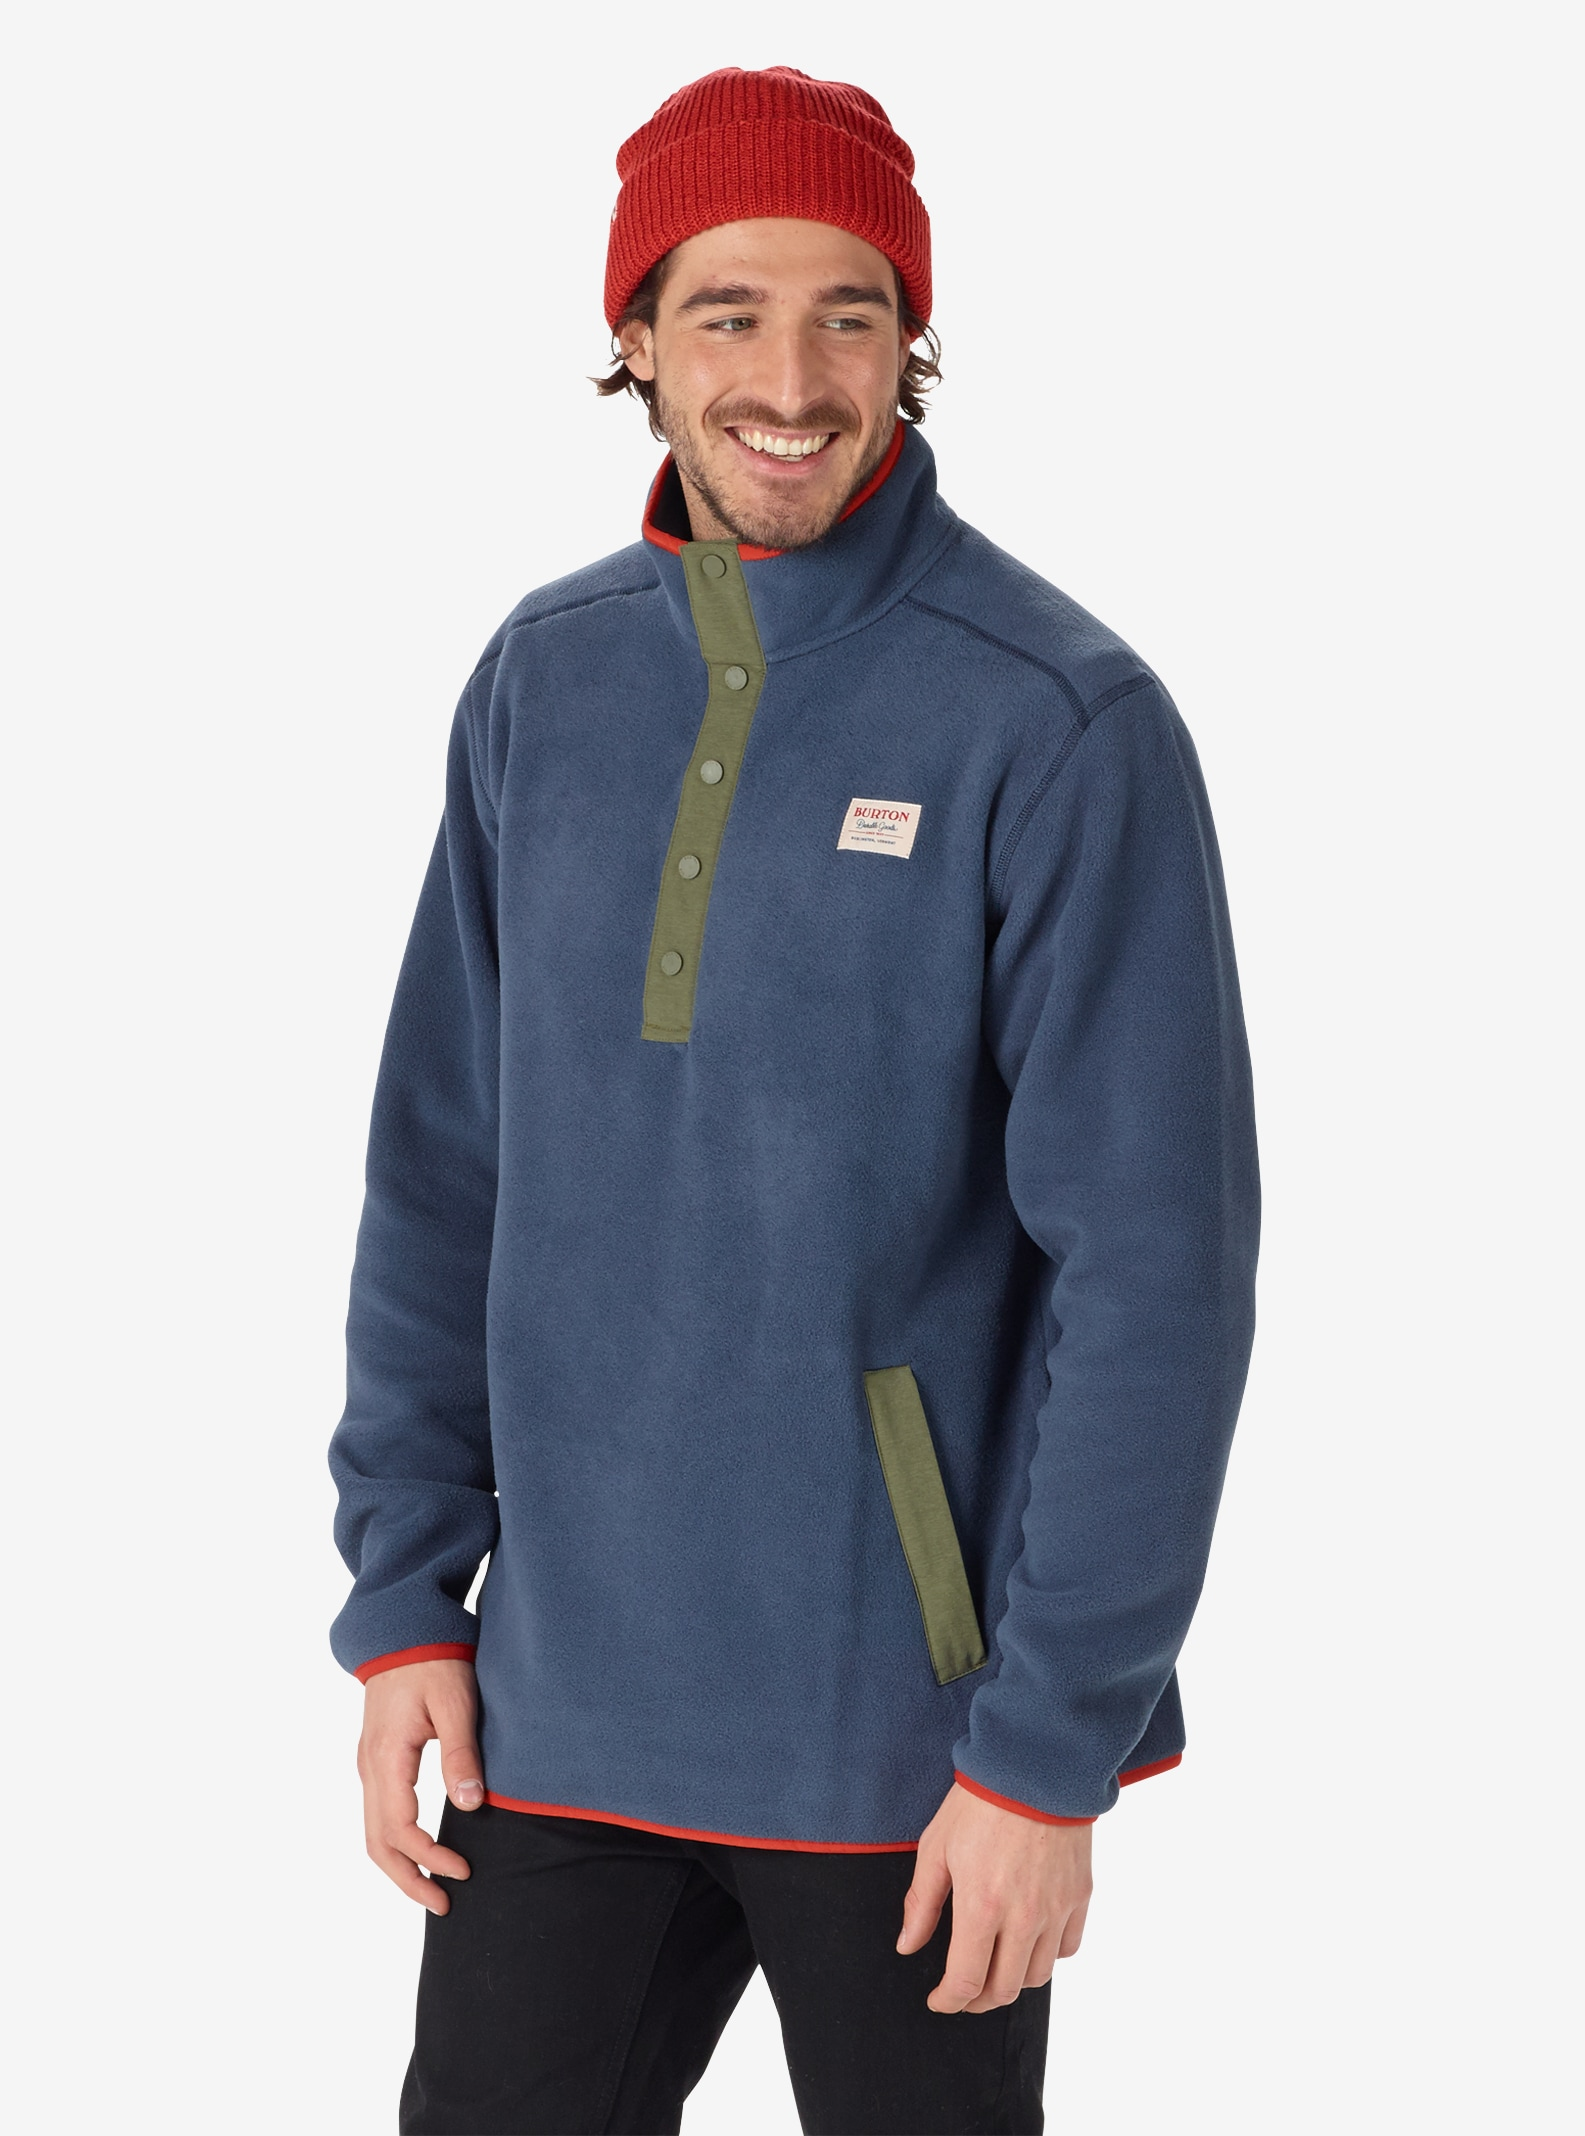 Men's Burton Hearth Fleece Anorak shown in Mood Indigo